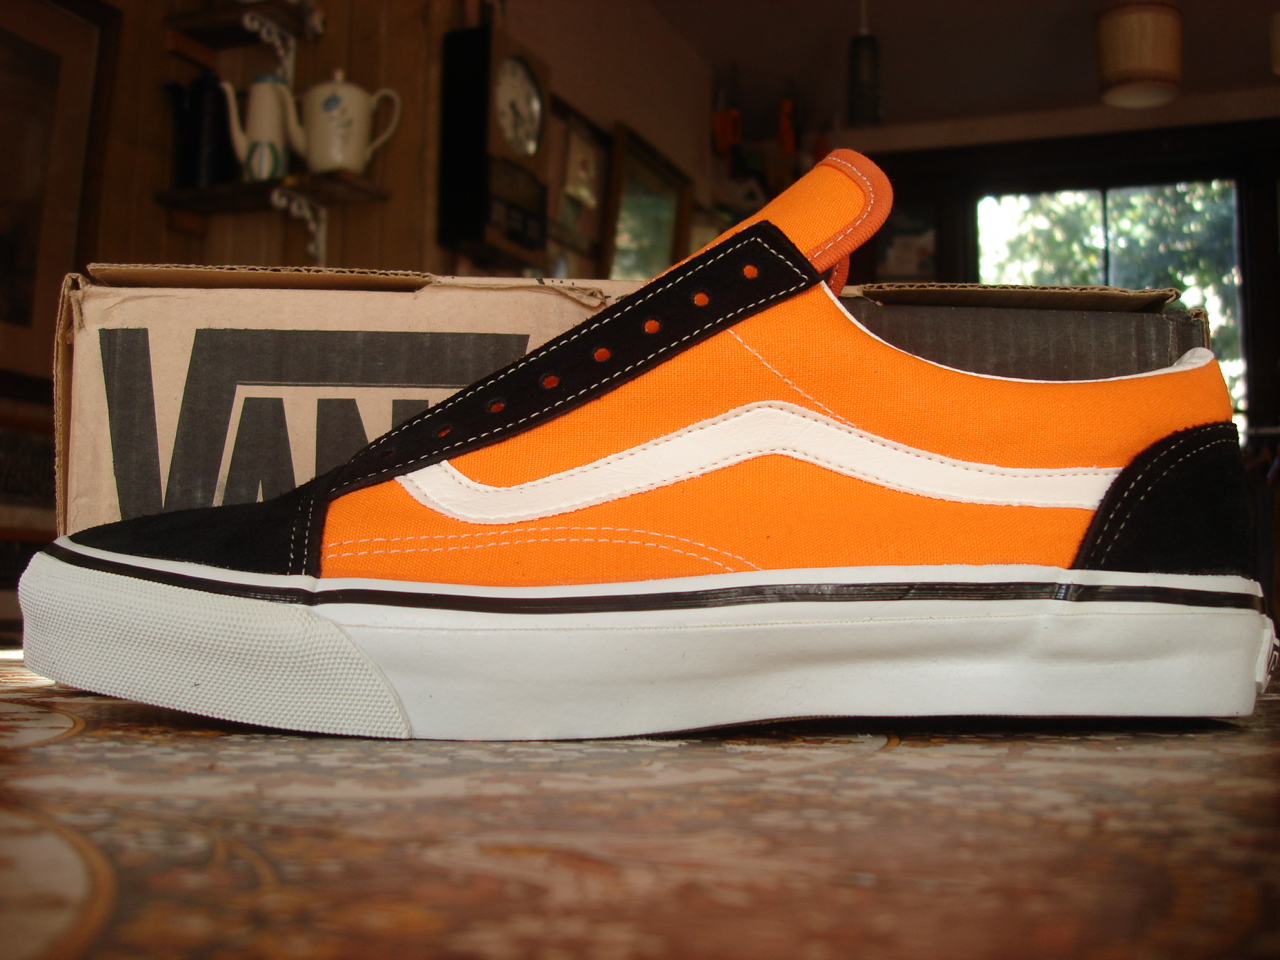 theothersideofthepillow vintage vans neon orange canvas. Black Bedroom Furniture Sets. Home Design Ideas